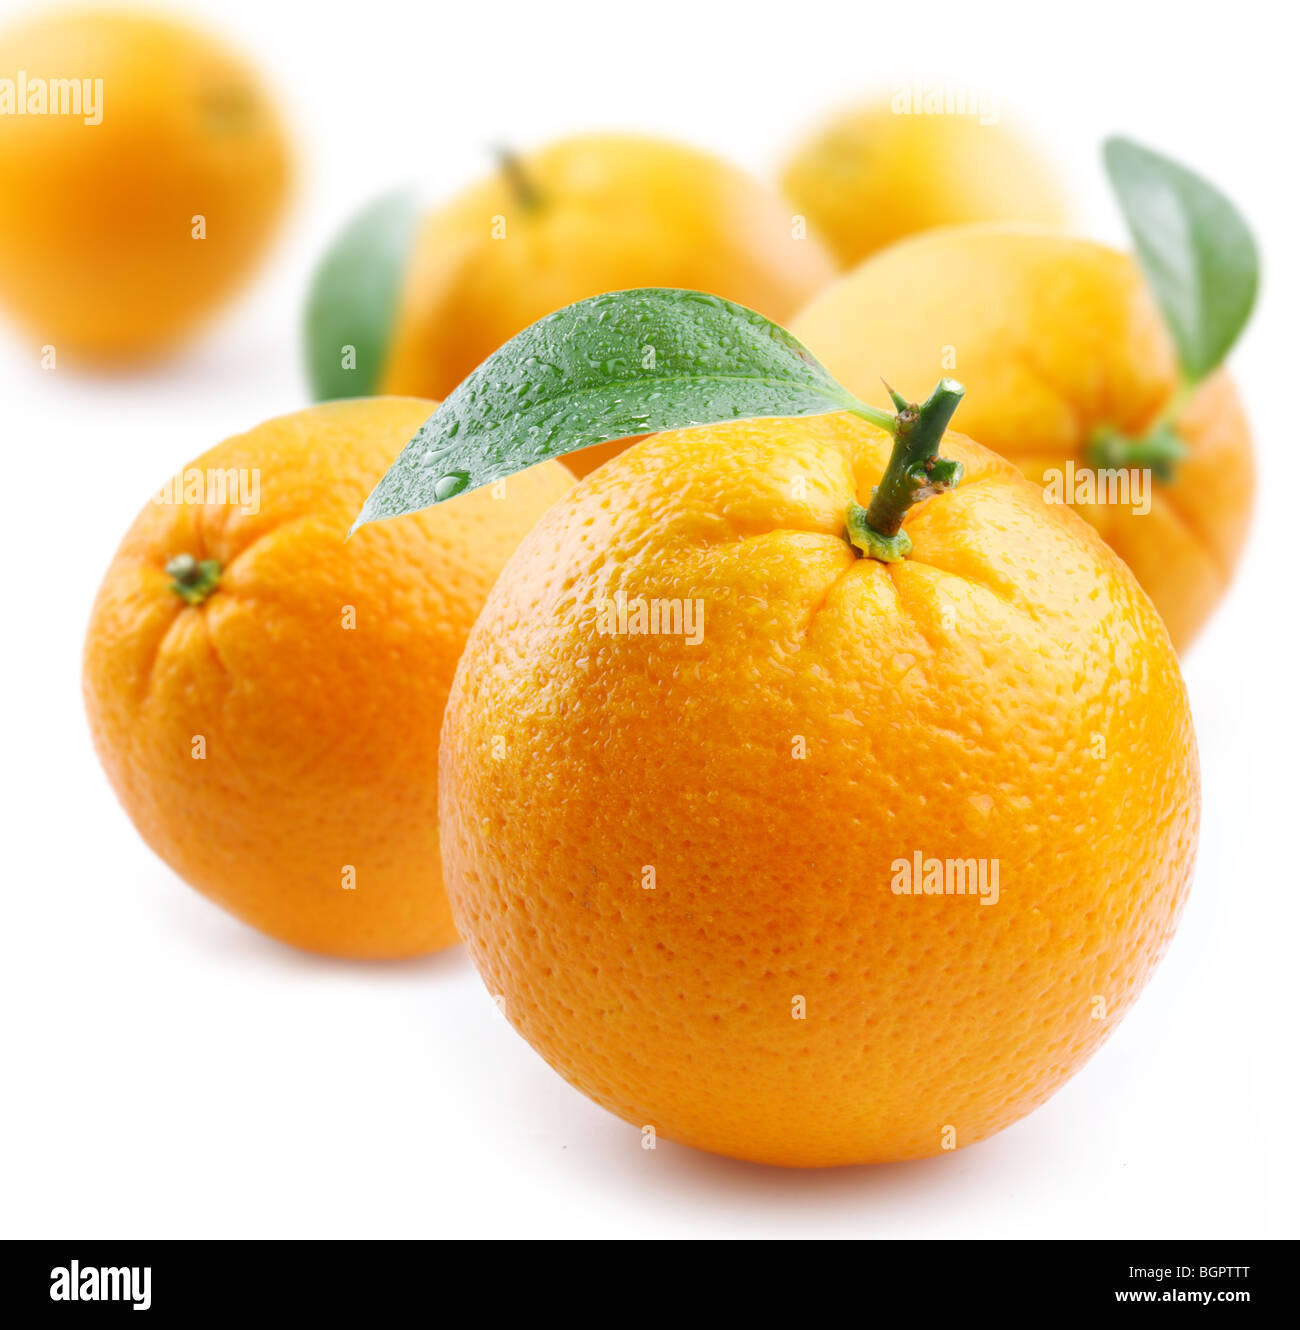 ripe oranges with leaves on white background - Stock Image